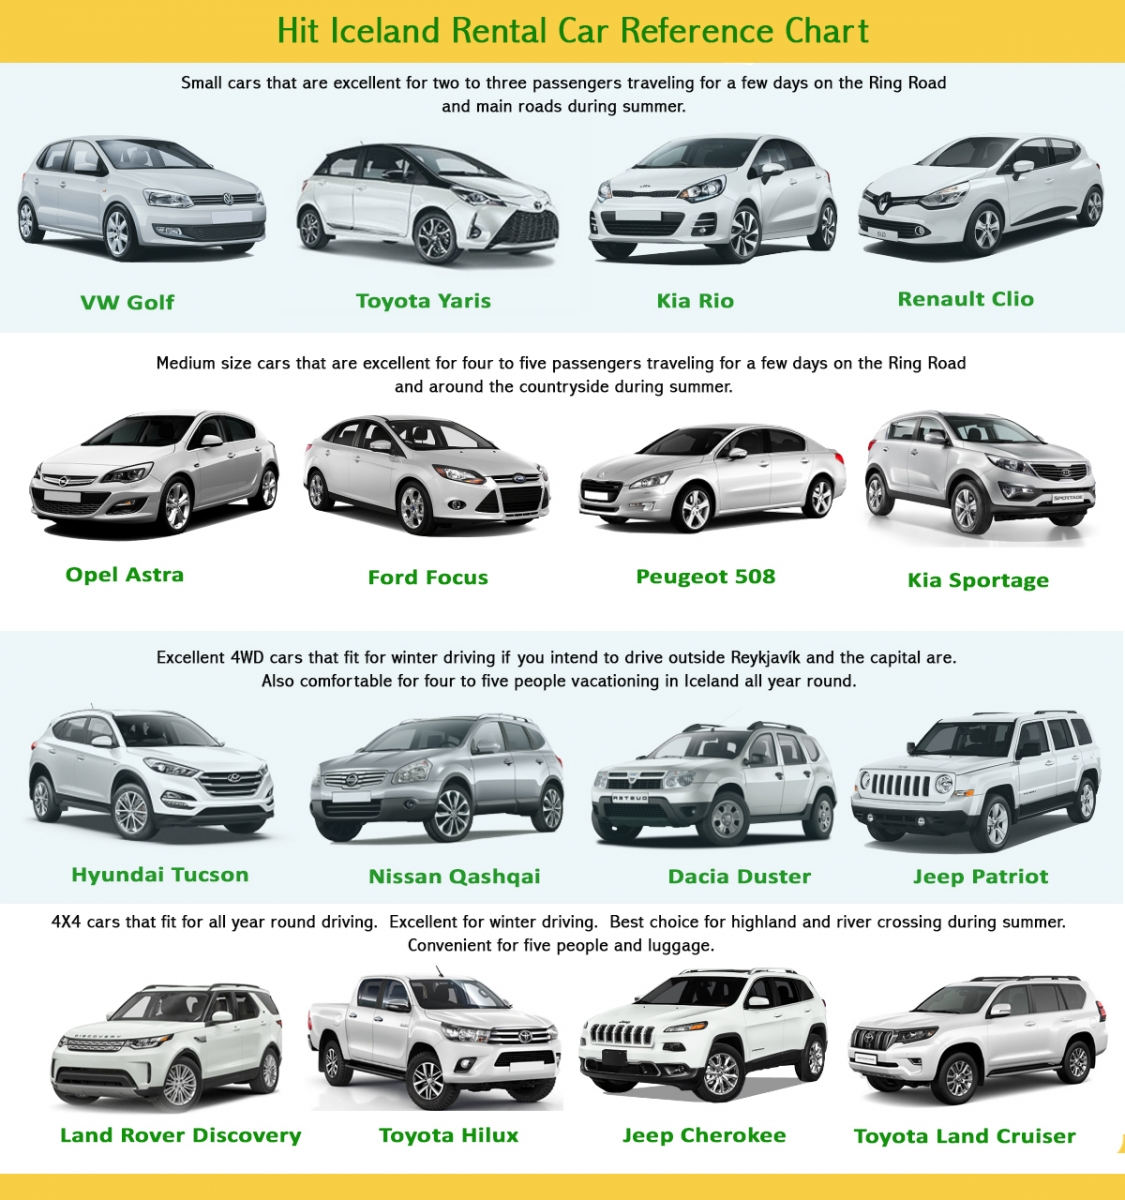 Ht Iceland rental car reference Chart